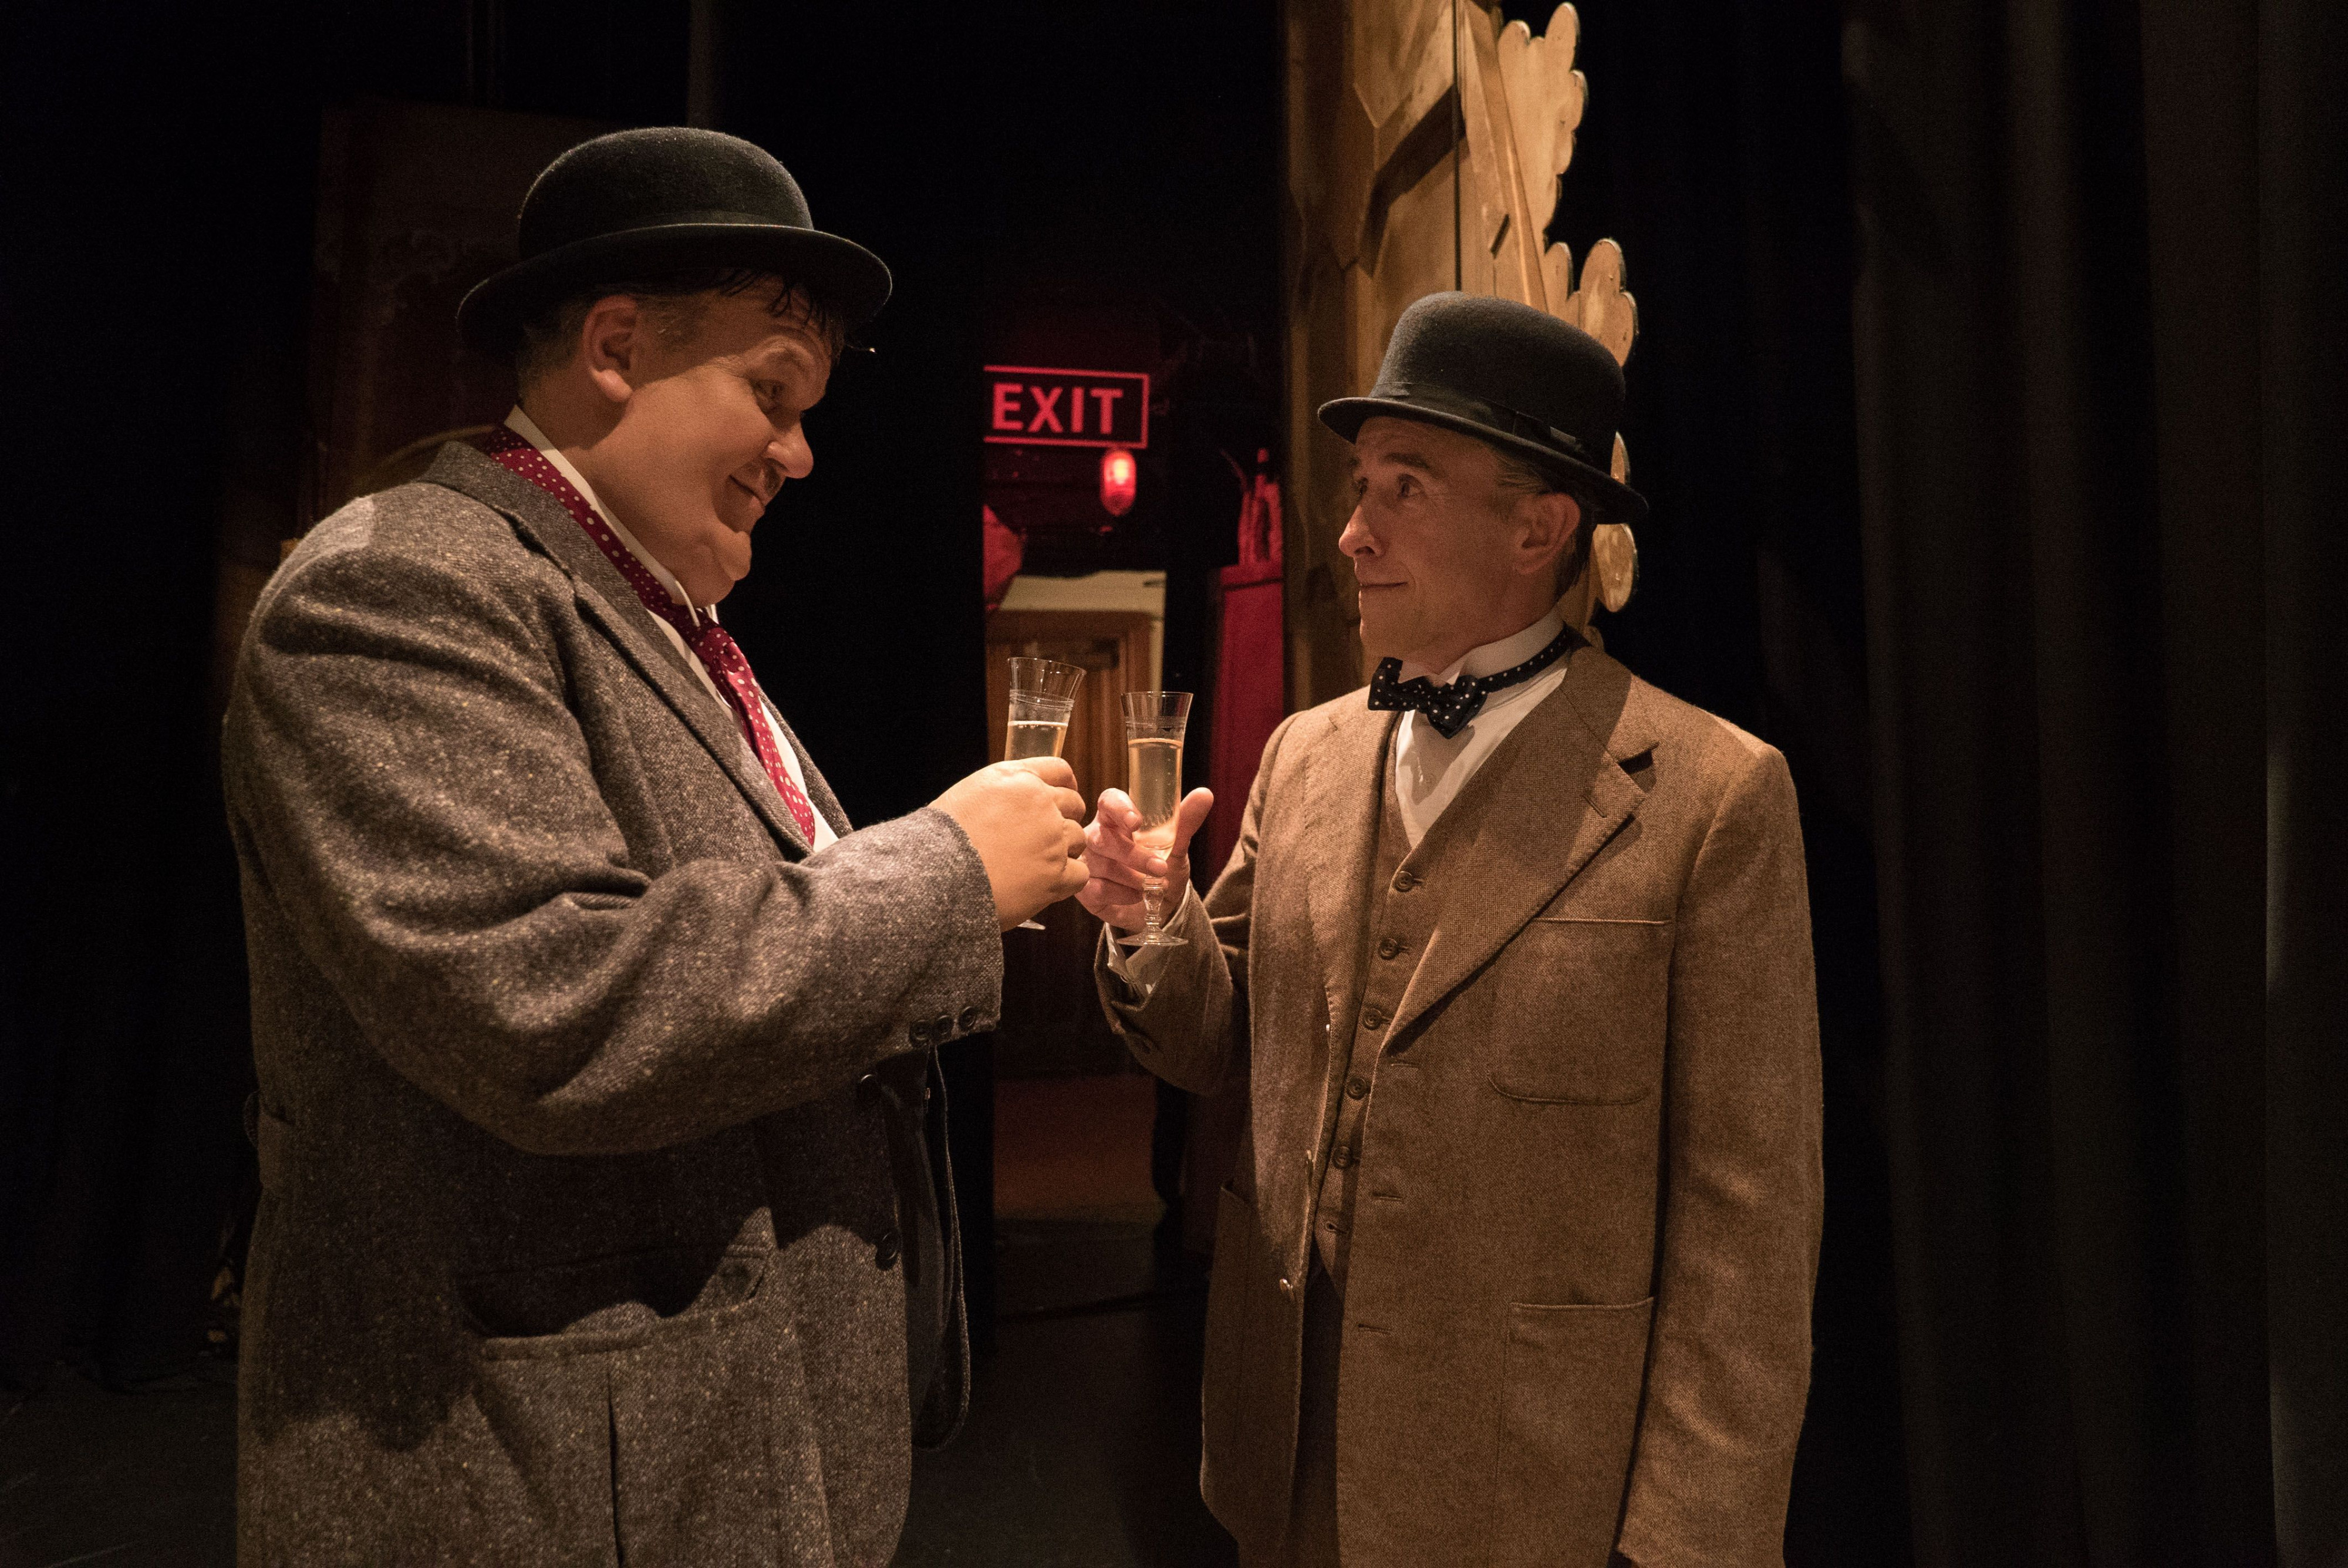 Stan and Ollie: Scene Image 11